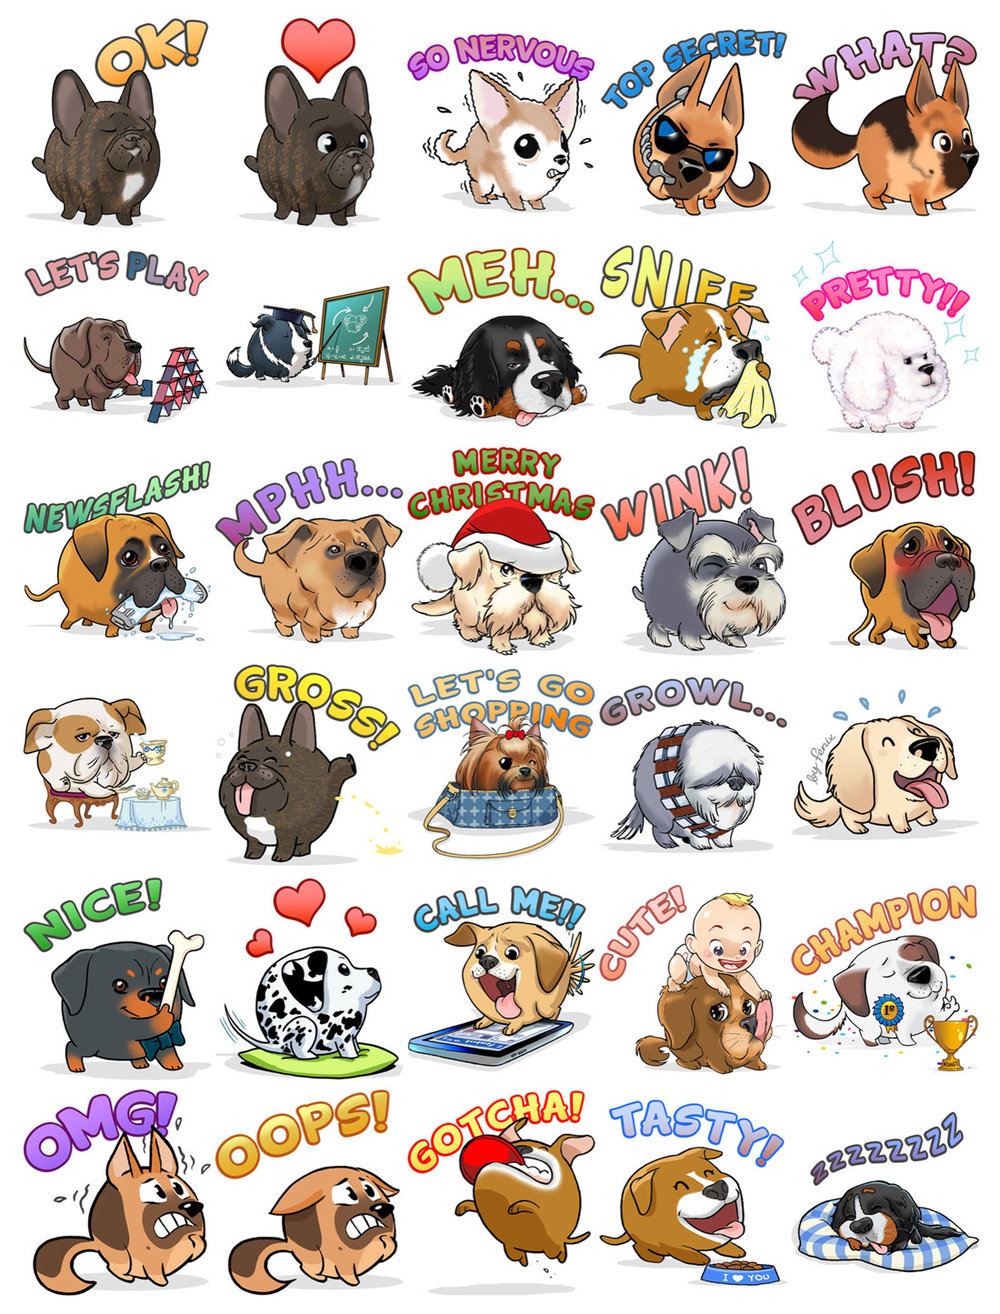 My Edoji Stickers. Border Collie. Great Dane. Dalmatian. miniature Schnauzer. Rottweiler. British Bulldog. Golden Retriever. Bernese Mountain dog. Yorkshire Terrier. Mongrel. Boxer. American Staffordshire Terrier. Poodle. Chihuahua. German Shepherd. French Bulldog. Argentinian Mastiff. Pyrenean Mountain.